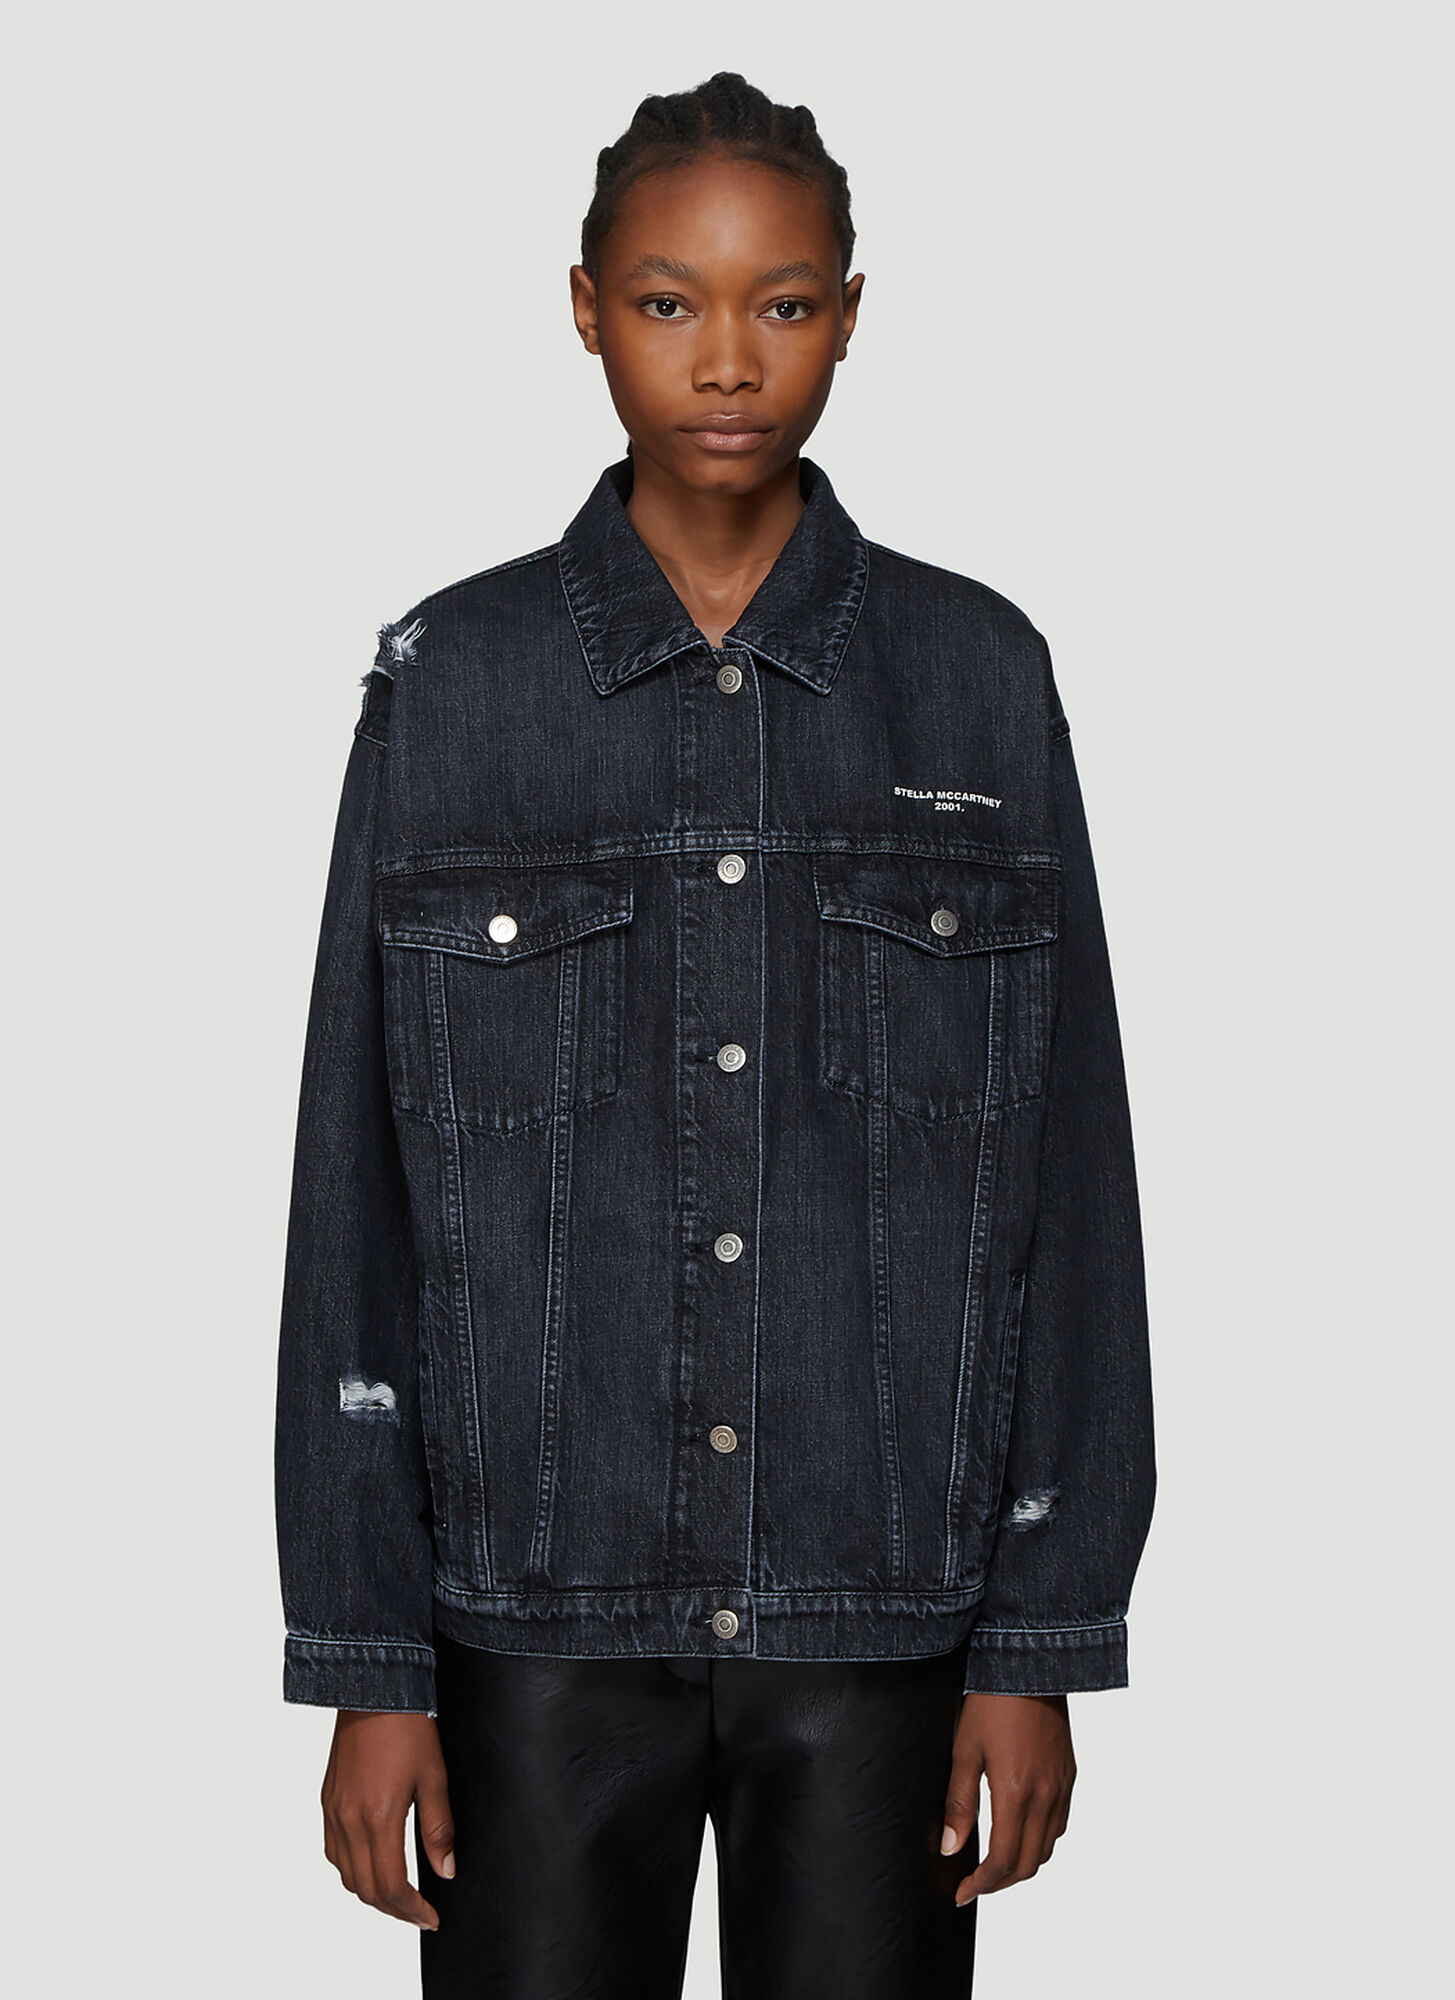 Photo of Stella McCartney Distressed Denim Jacket in Blue - Stella McCartney Jackets